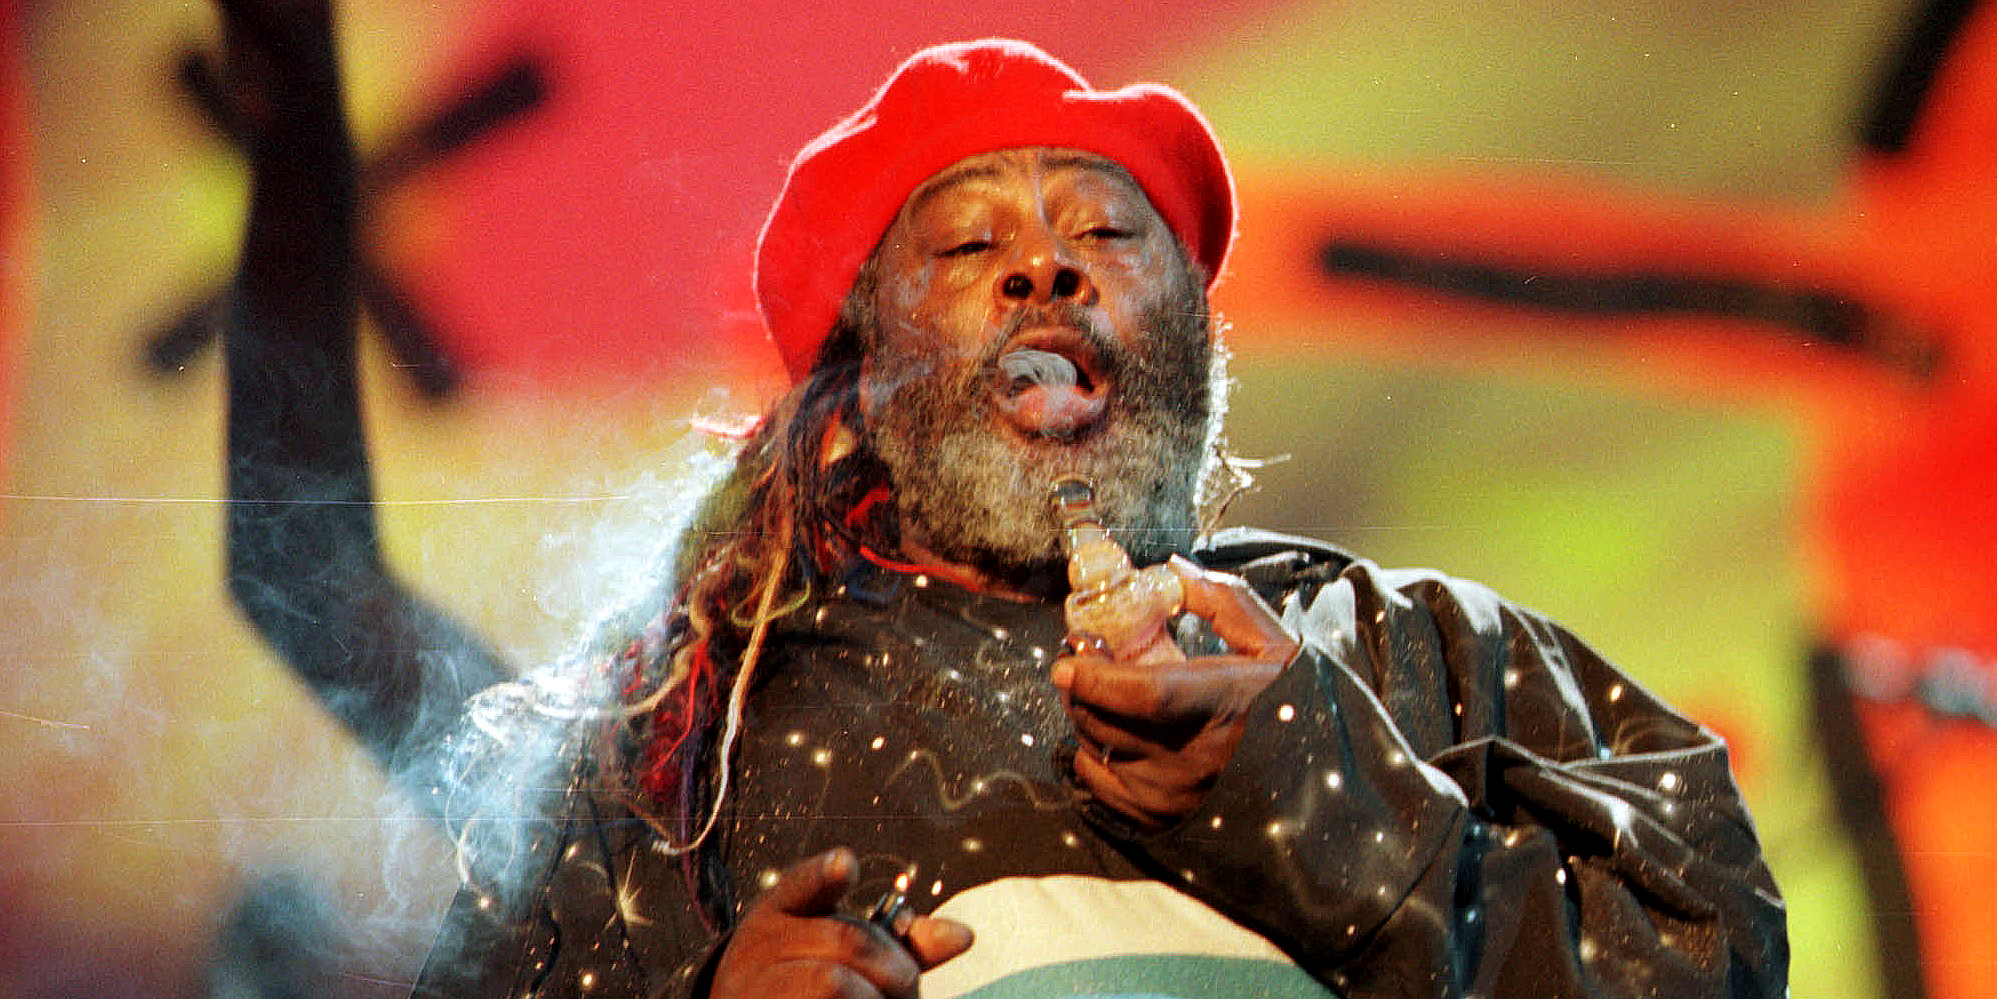 GeorgeClinton Funk legend George Clinton says Toronto has the best weed in the world